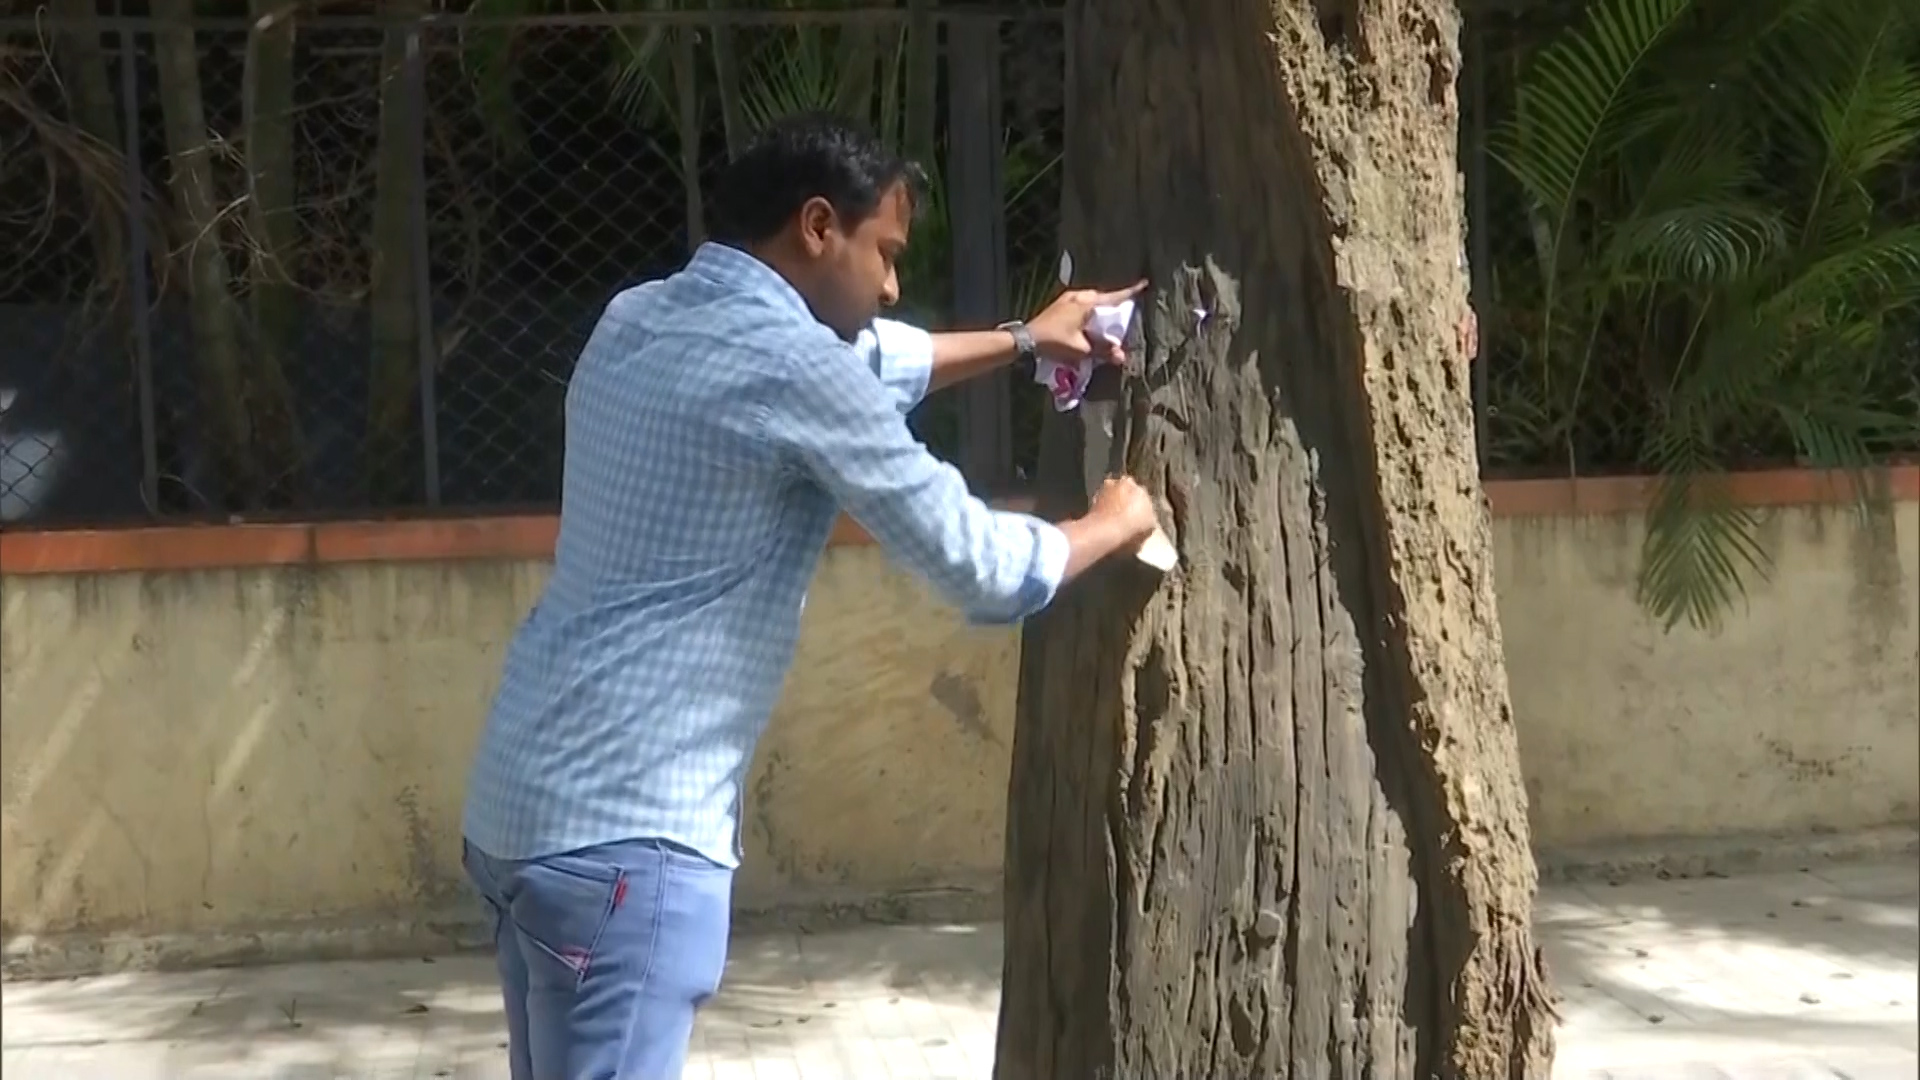 DRDO scientist on a mission to free tress of nails, posters